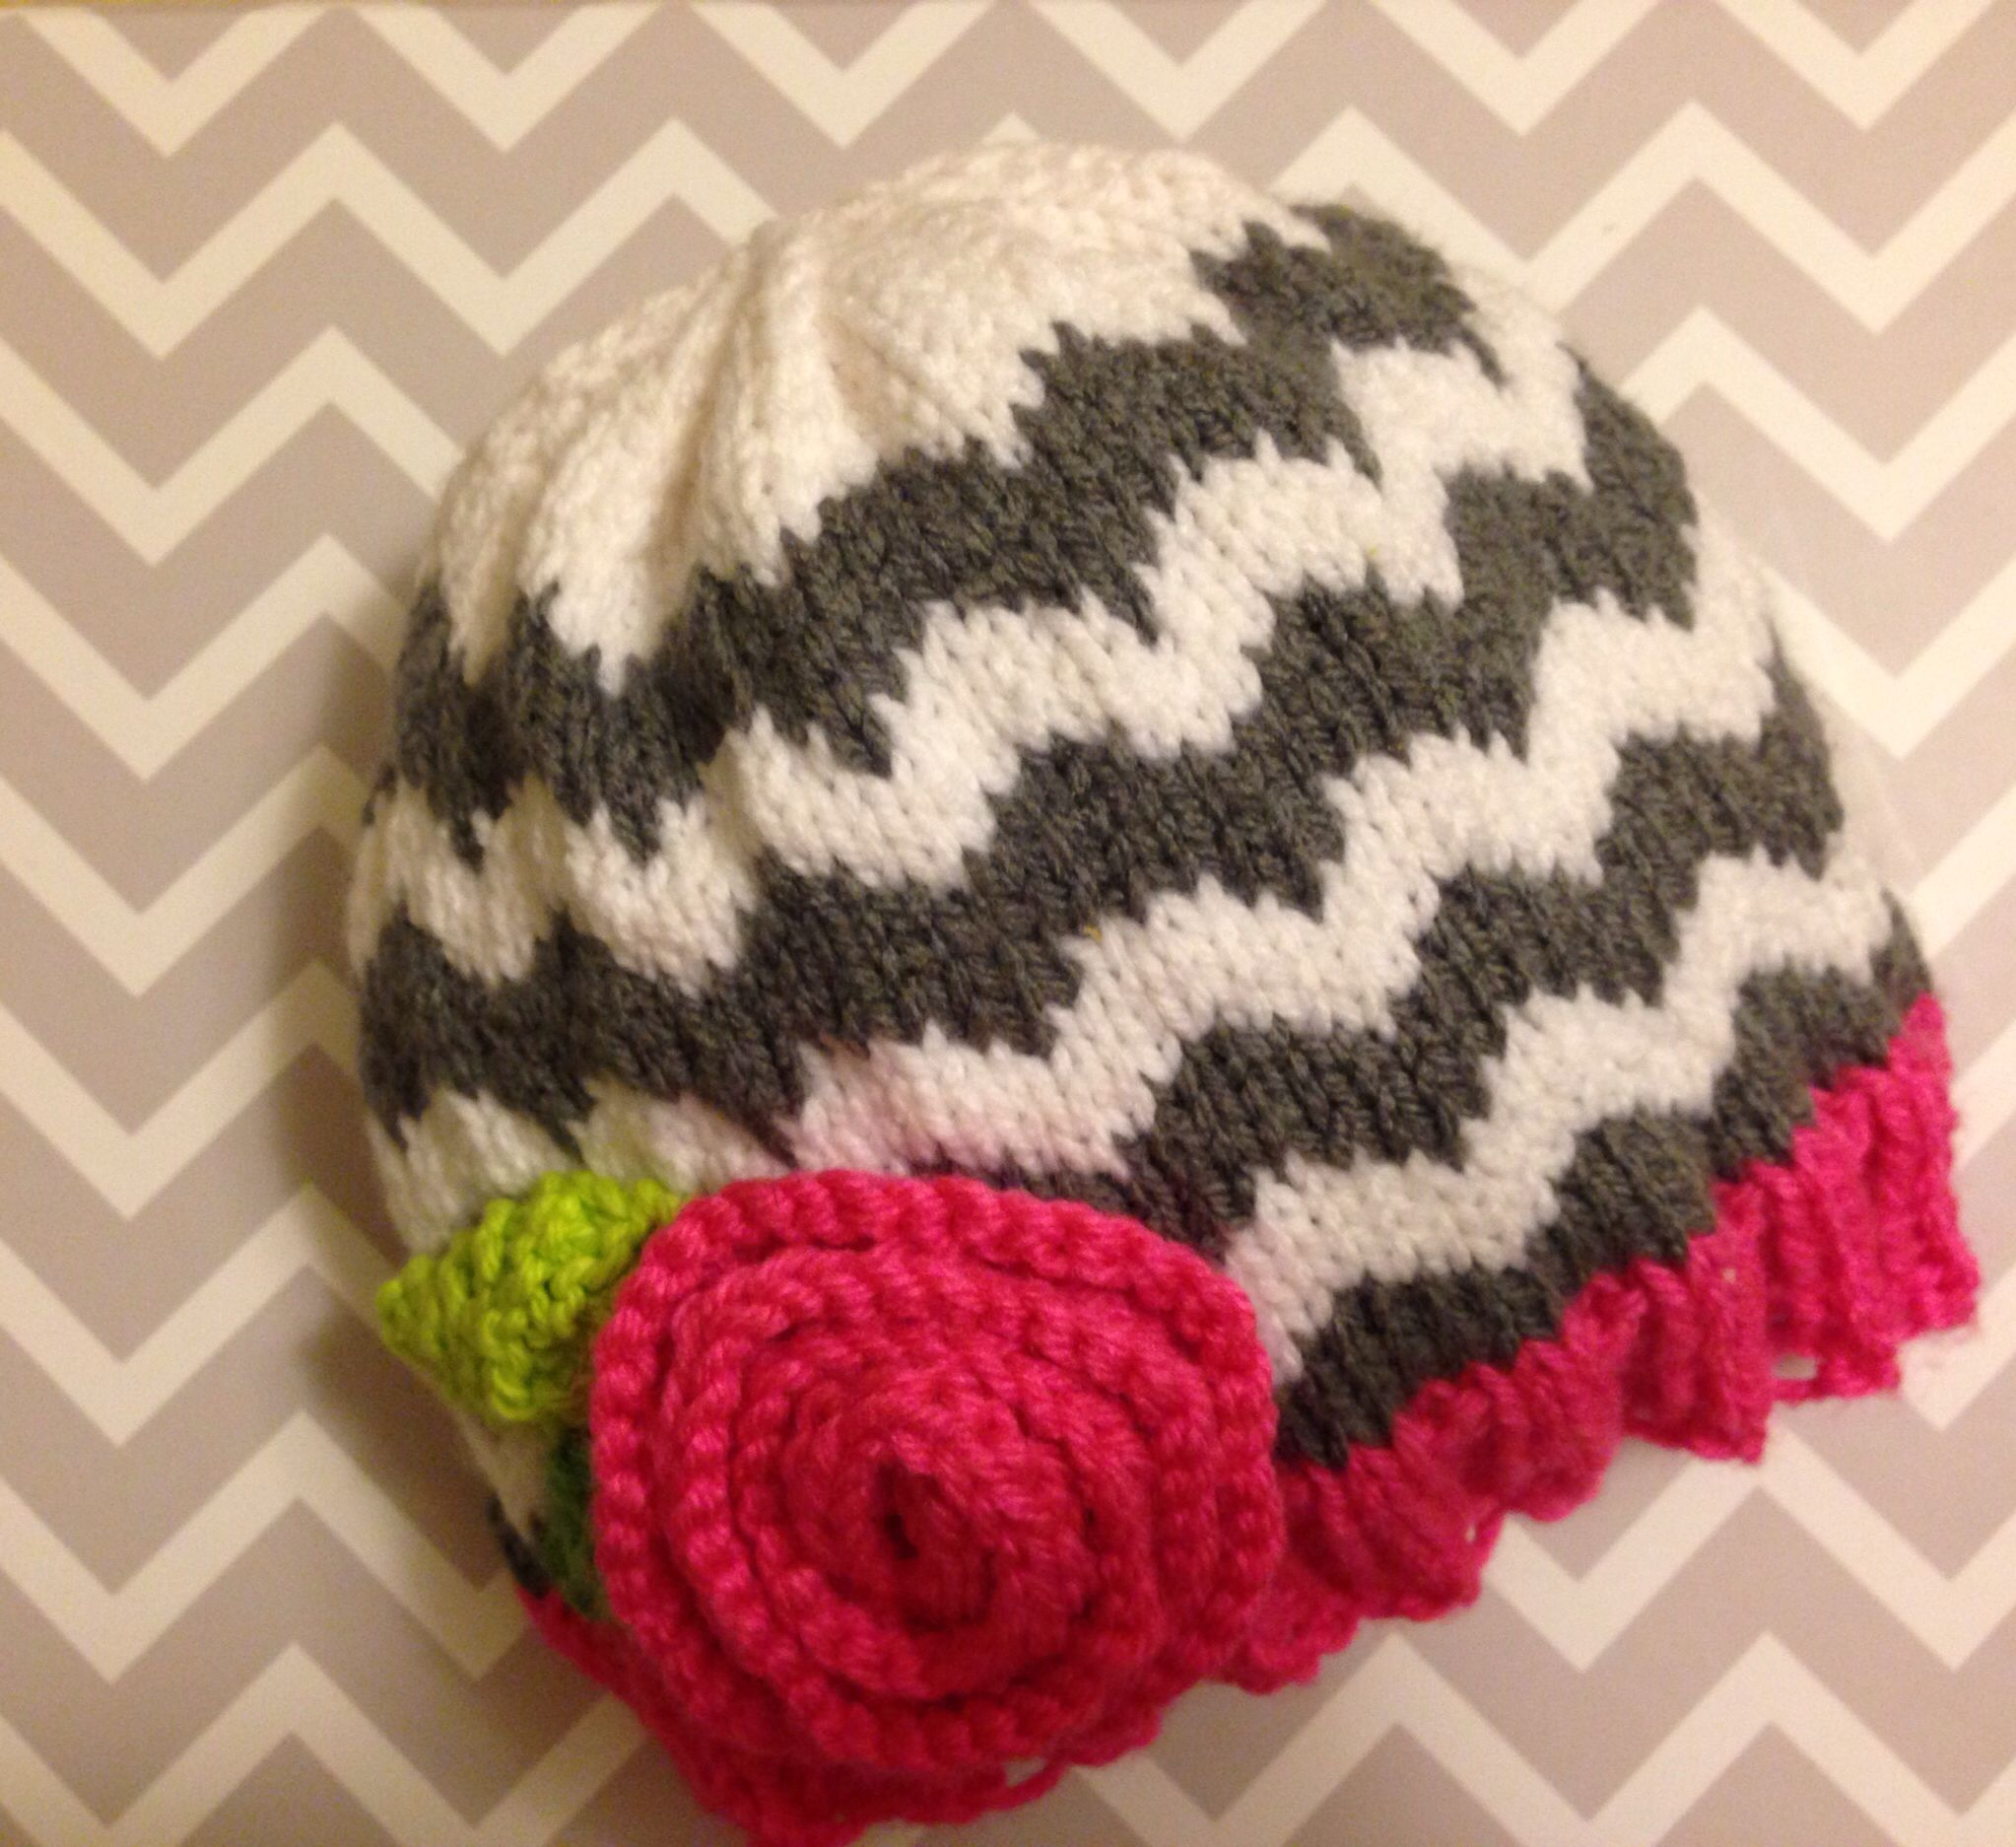 d513d854067 I made this chevron stripe baby hat for a friend. I used an etsy pattern